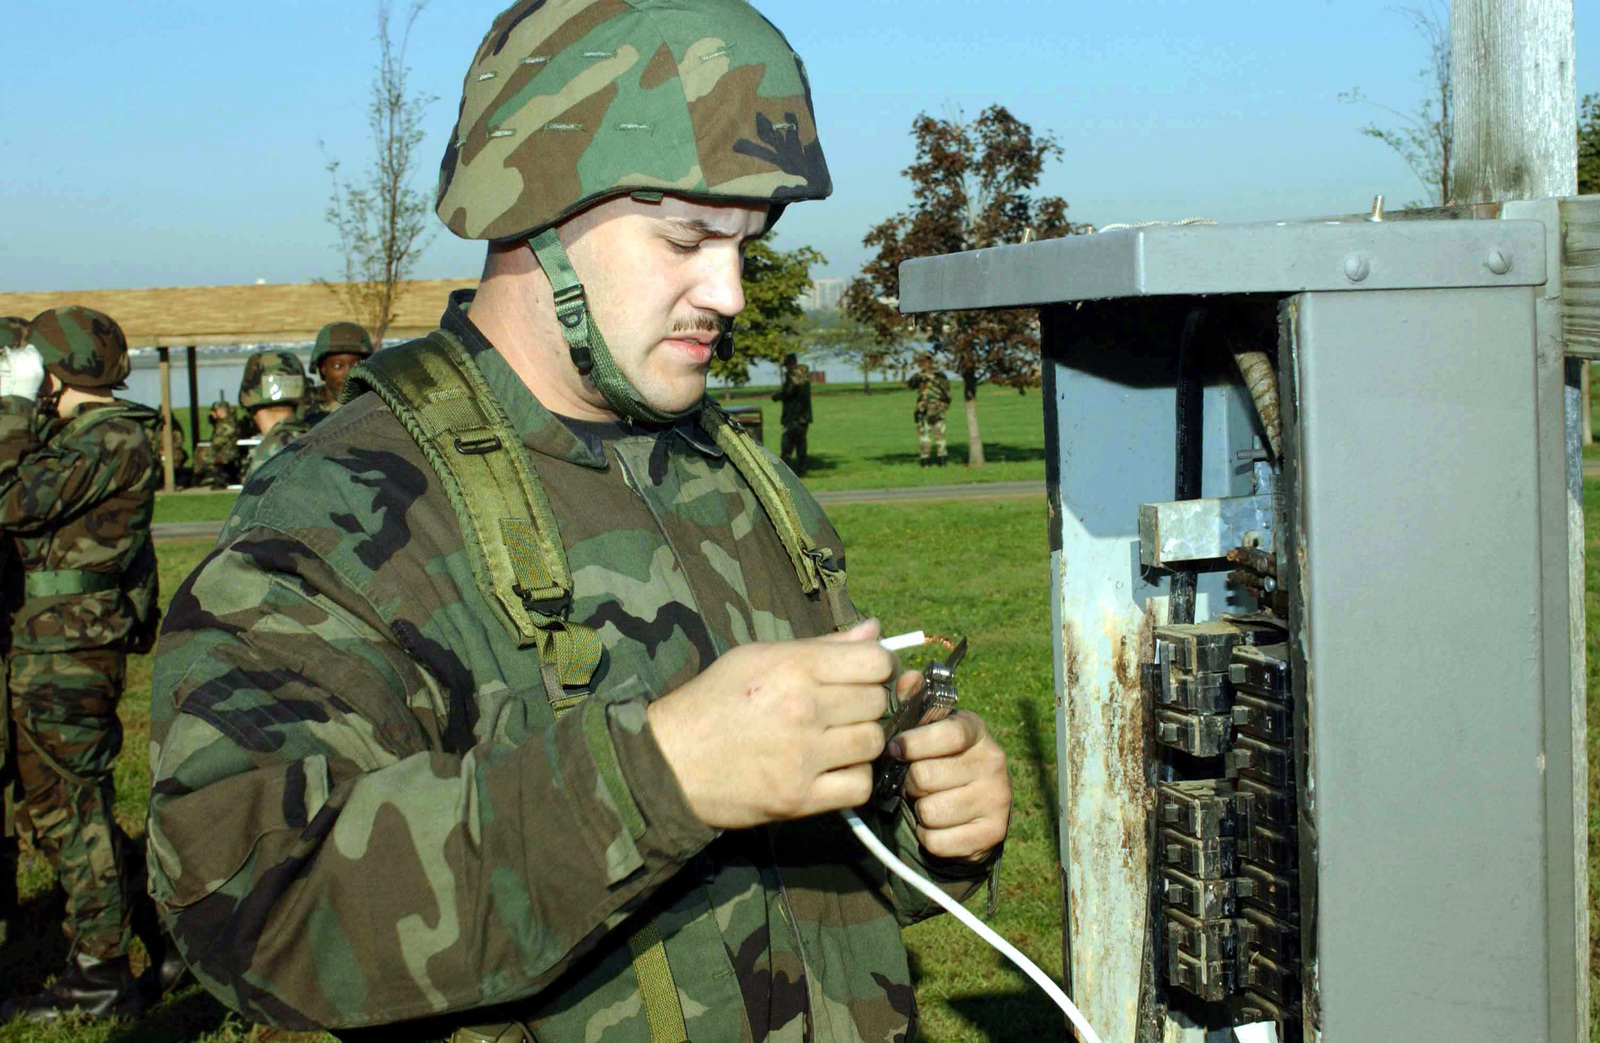 US Air Force (USAF) STAFF Sergeant (SSGT) Ford of the 11th Civil Engineering Squadron (CES) splices wire in a circuit breaker box during Exercise SABERTOOTH 2002, at Gieseboro park